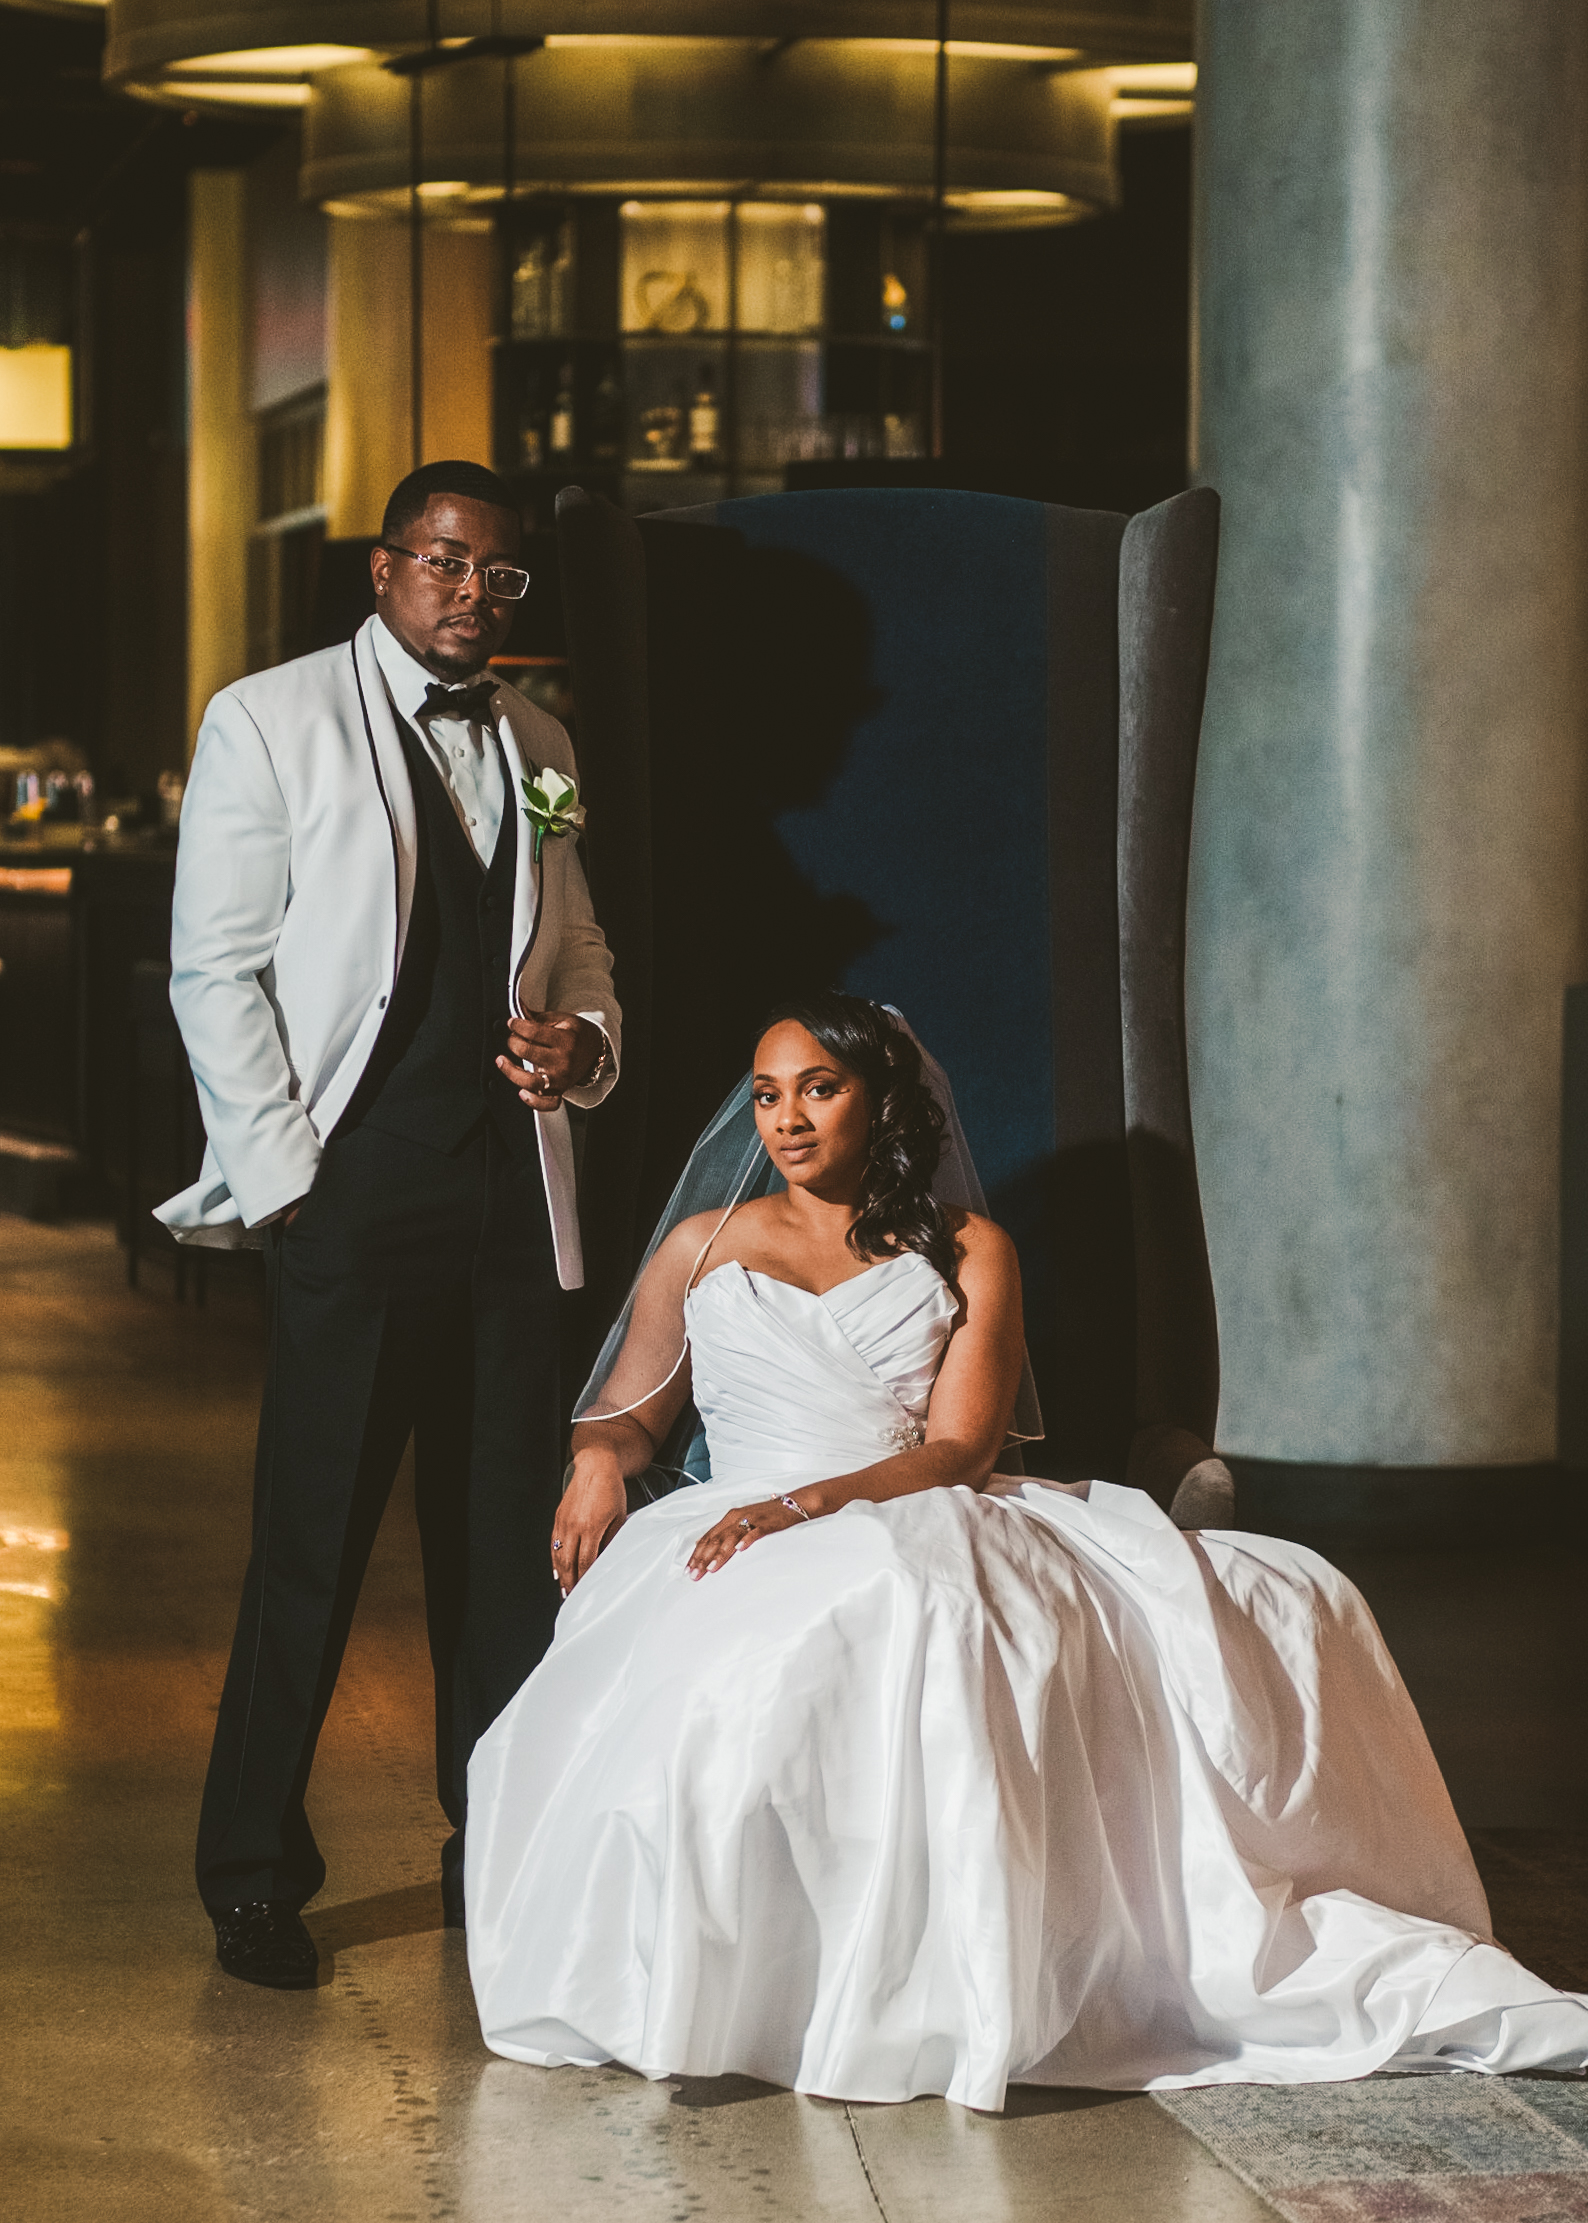 Downtown Toledo Renaissance Hotel with Wedding Photographers and Bride and Groom